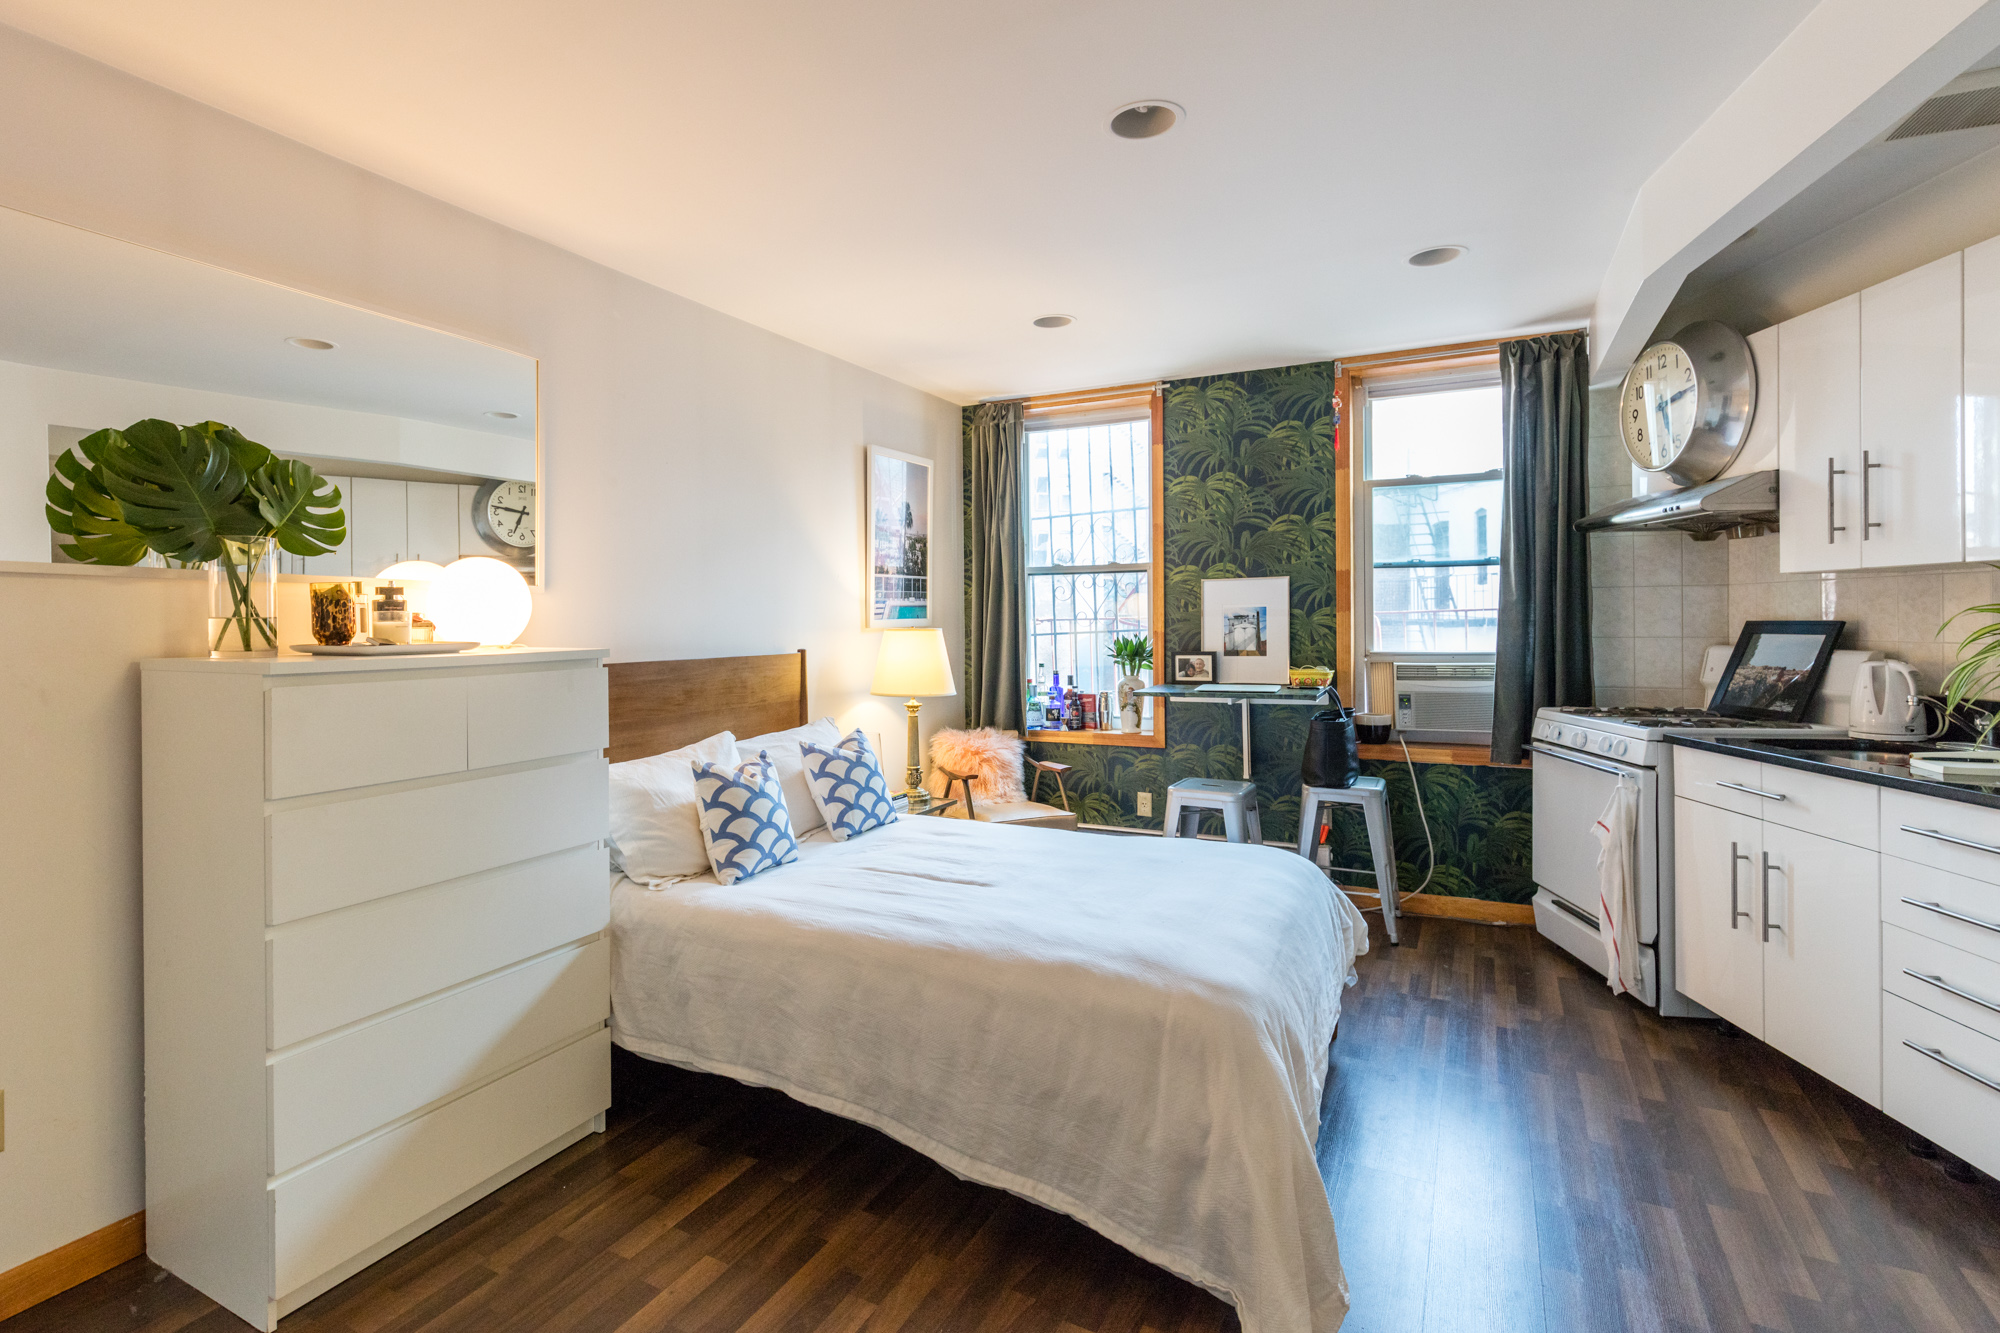 Studio Apartment Sleeping Solutions Nyc Micro Apartments Curbed Ny